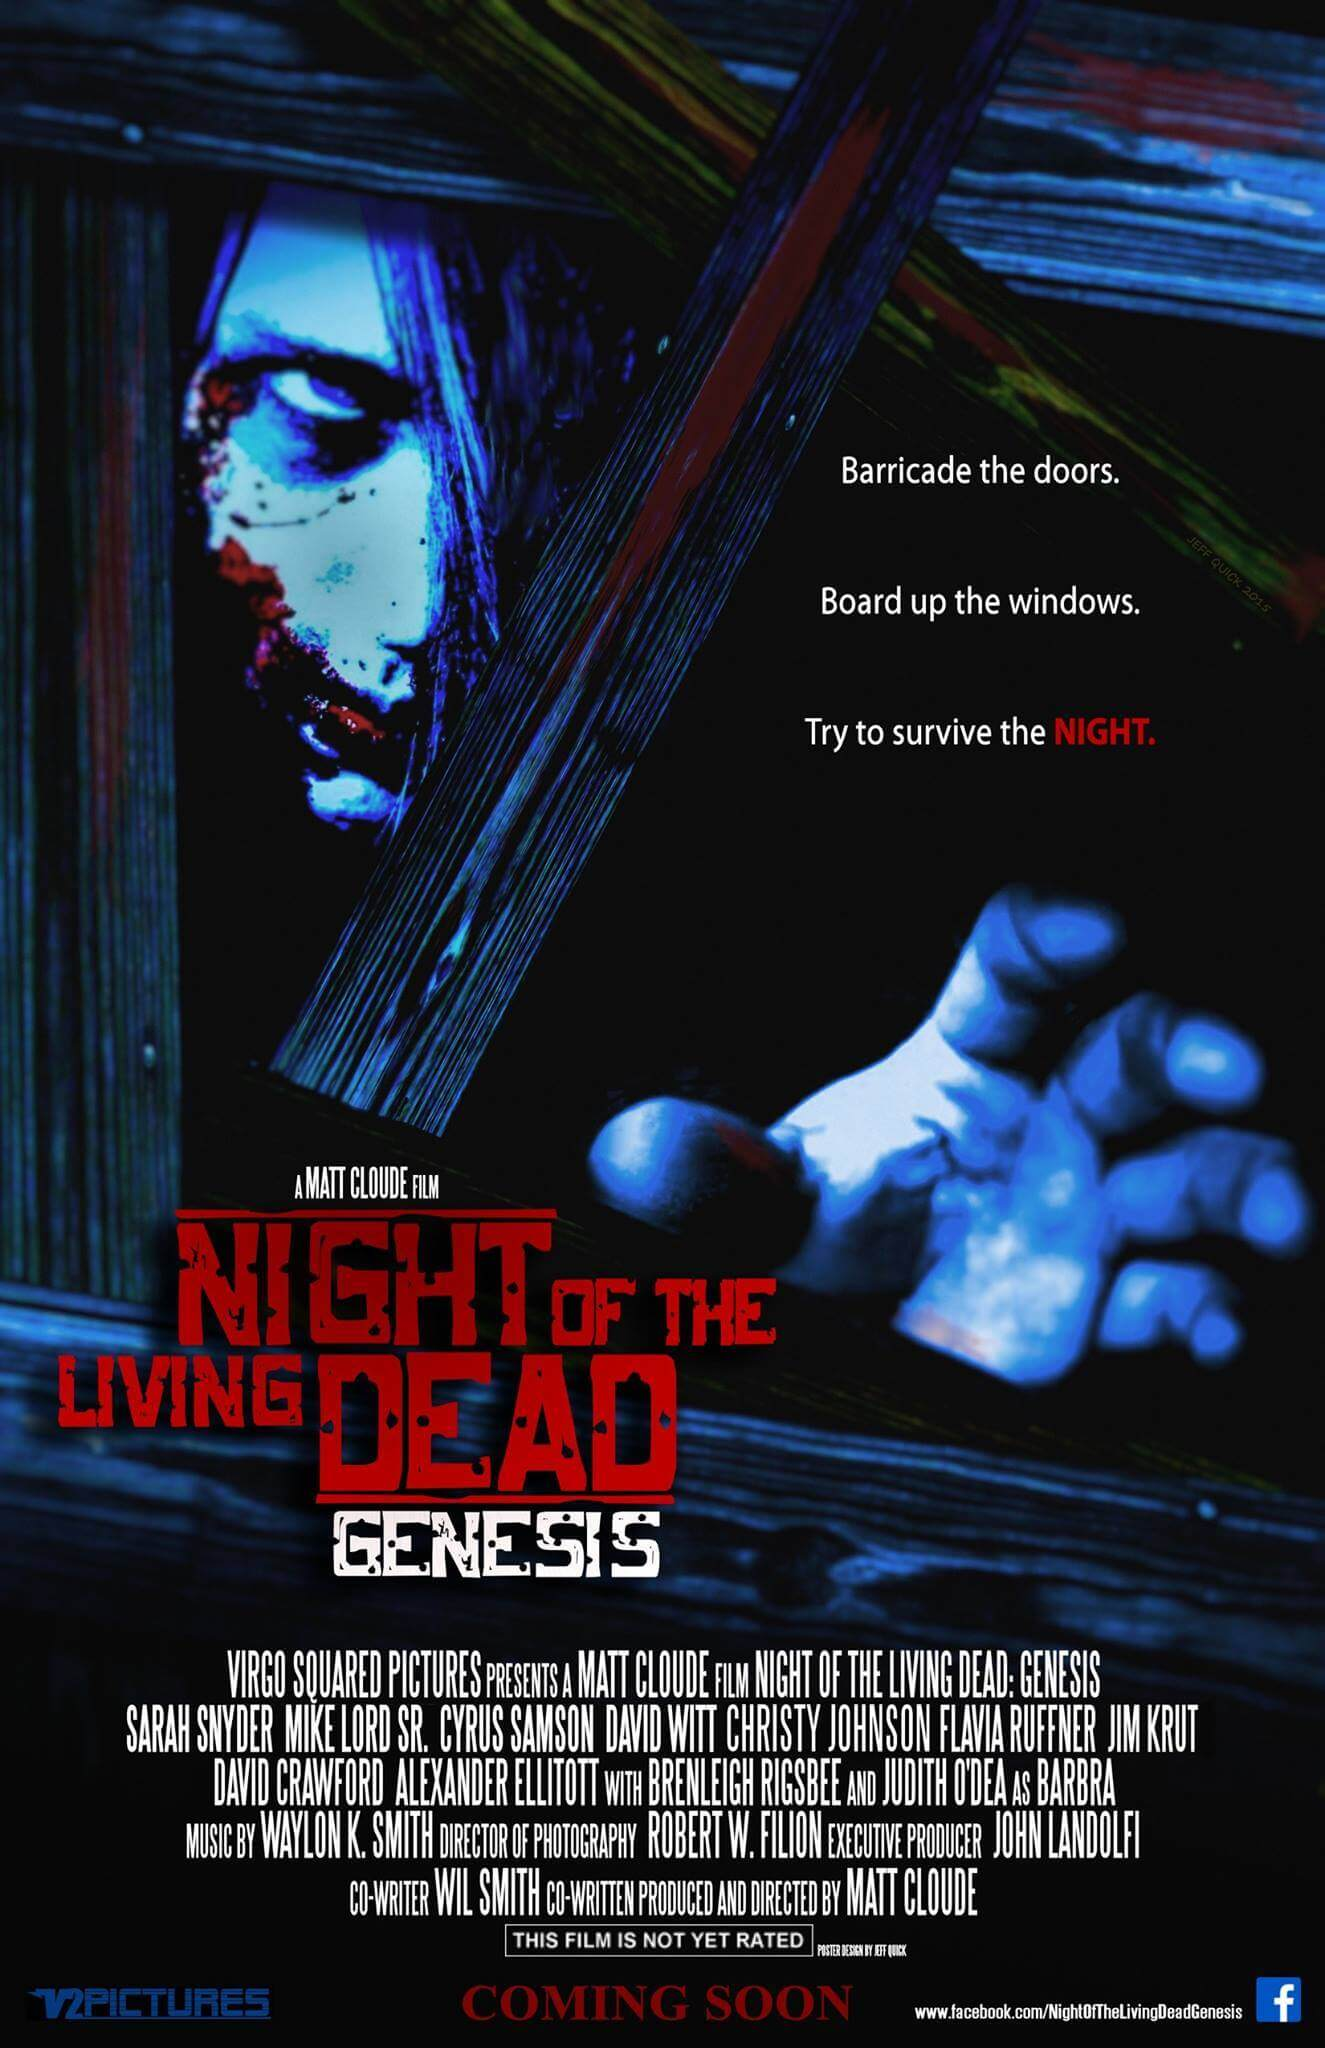 night-of-the-living-dead-genesis-1